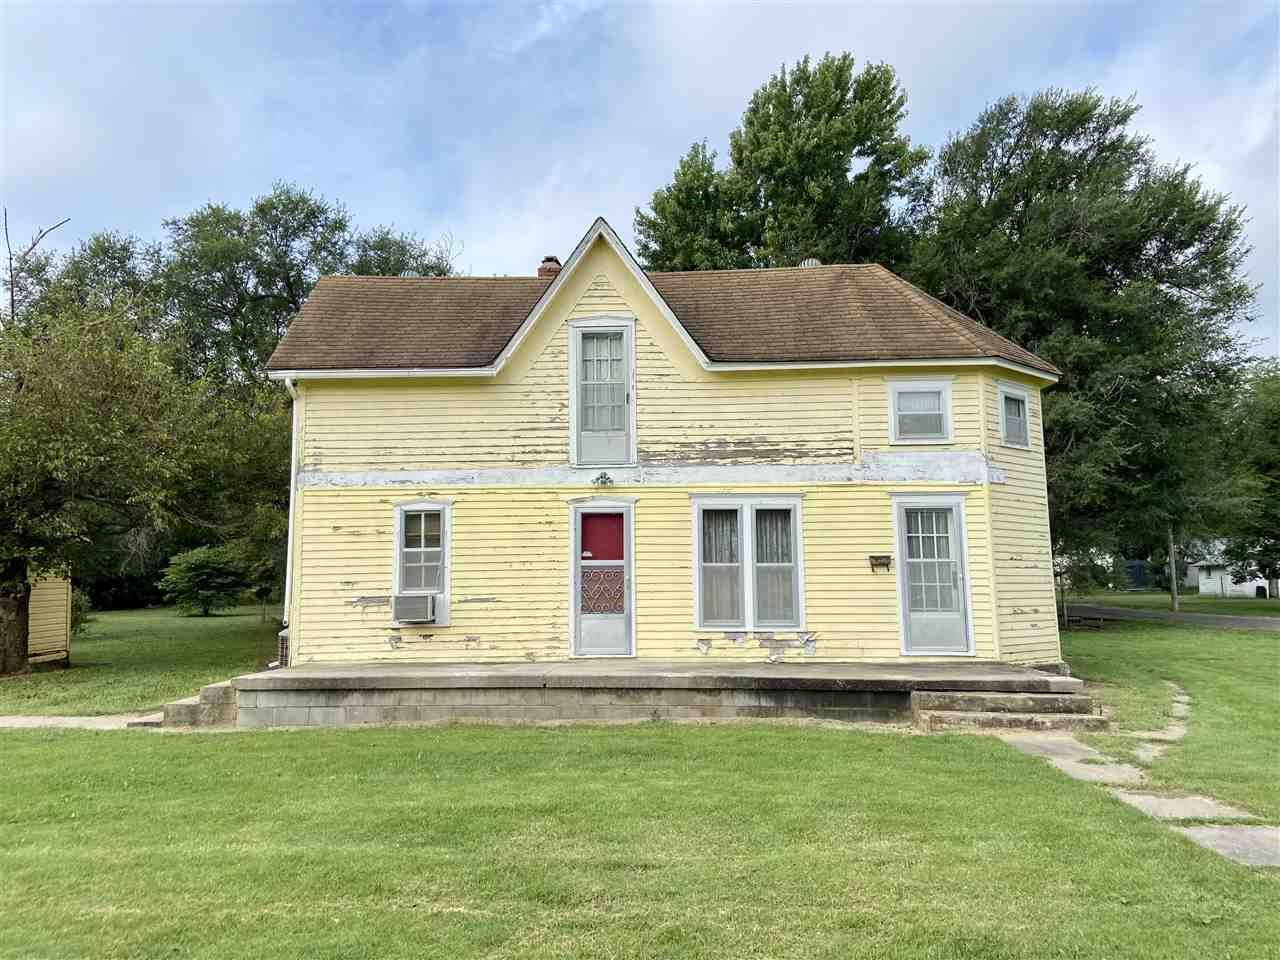 Photo of 37 McCardell Street, Council Grove, KS 66846 (MLS # 20212998)